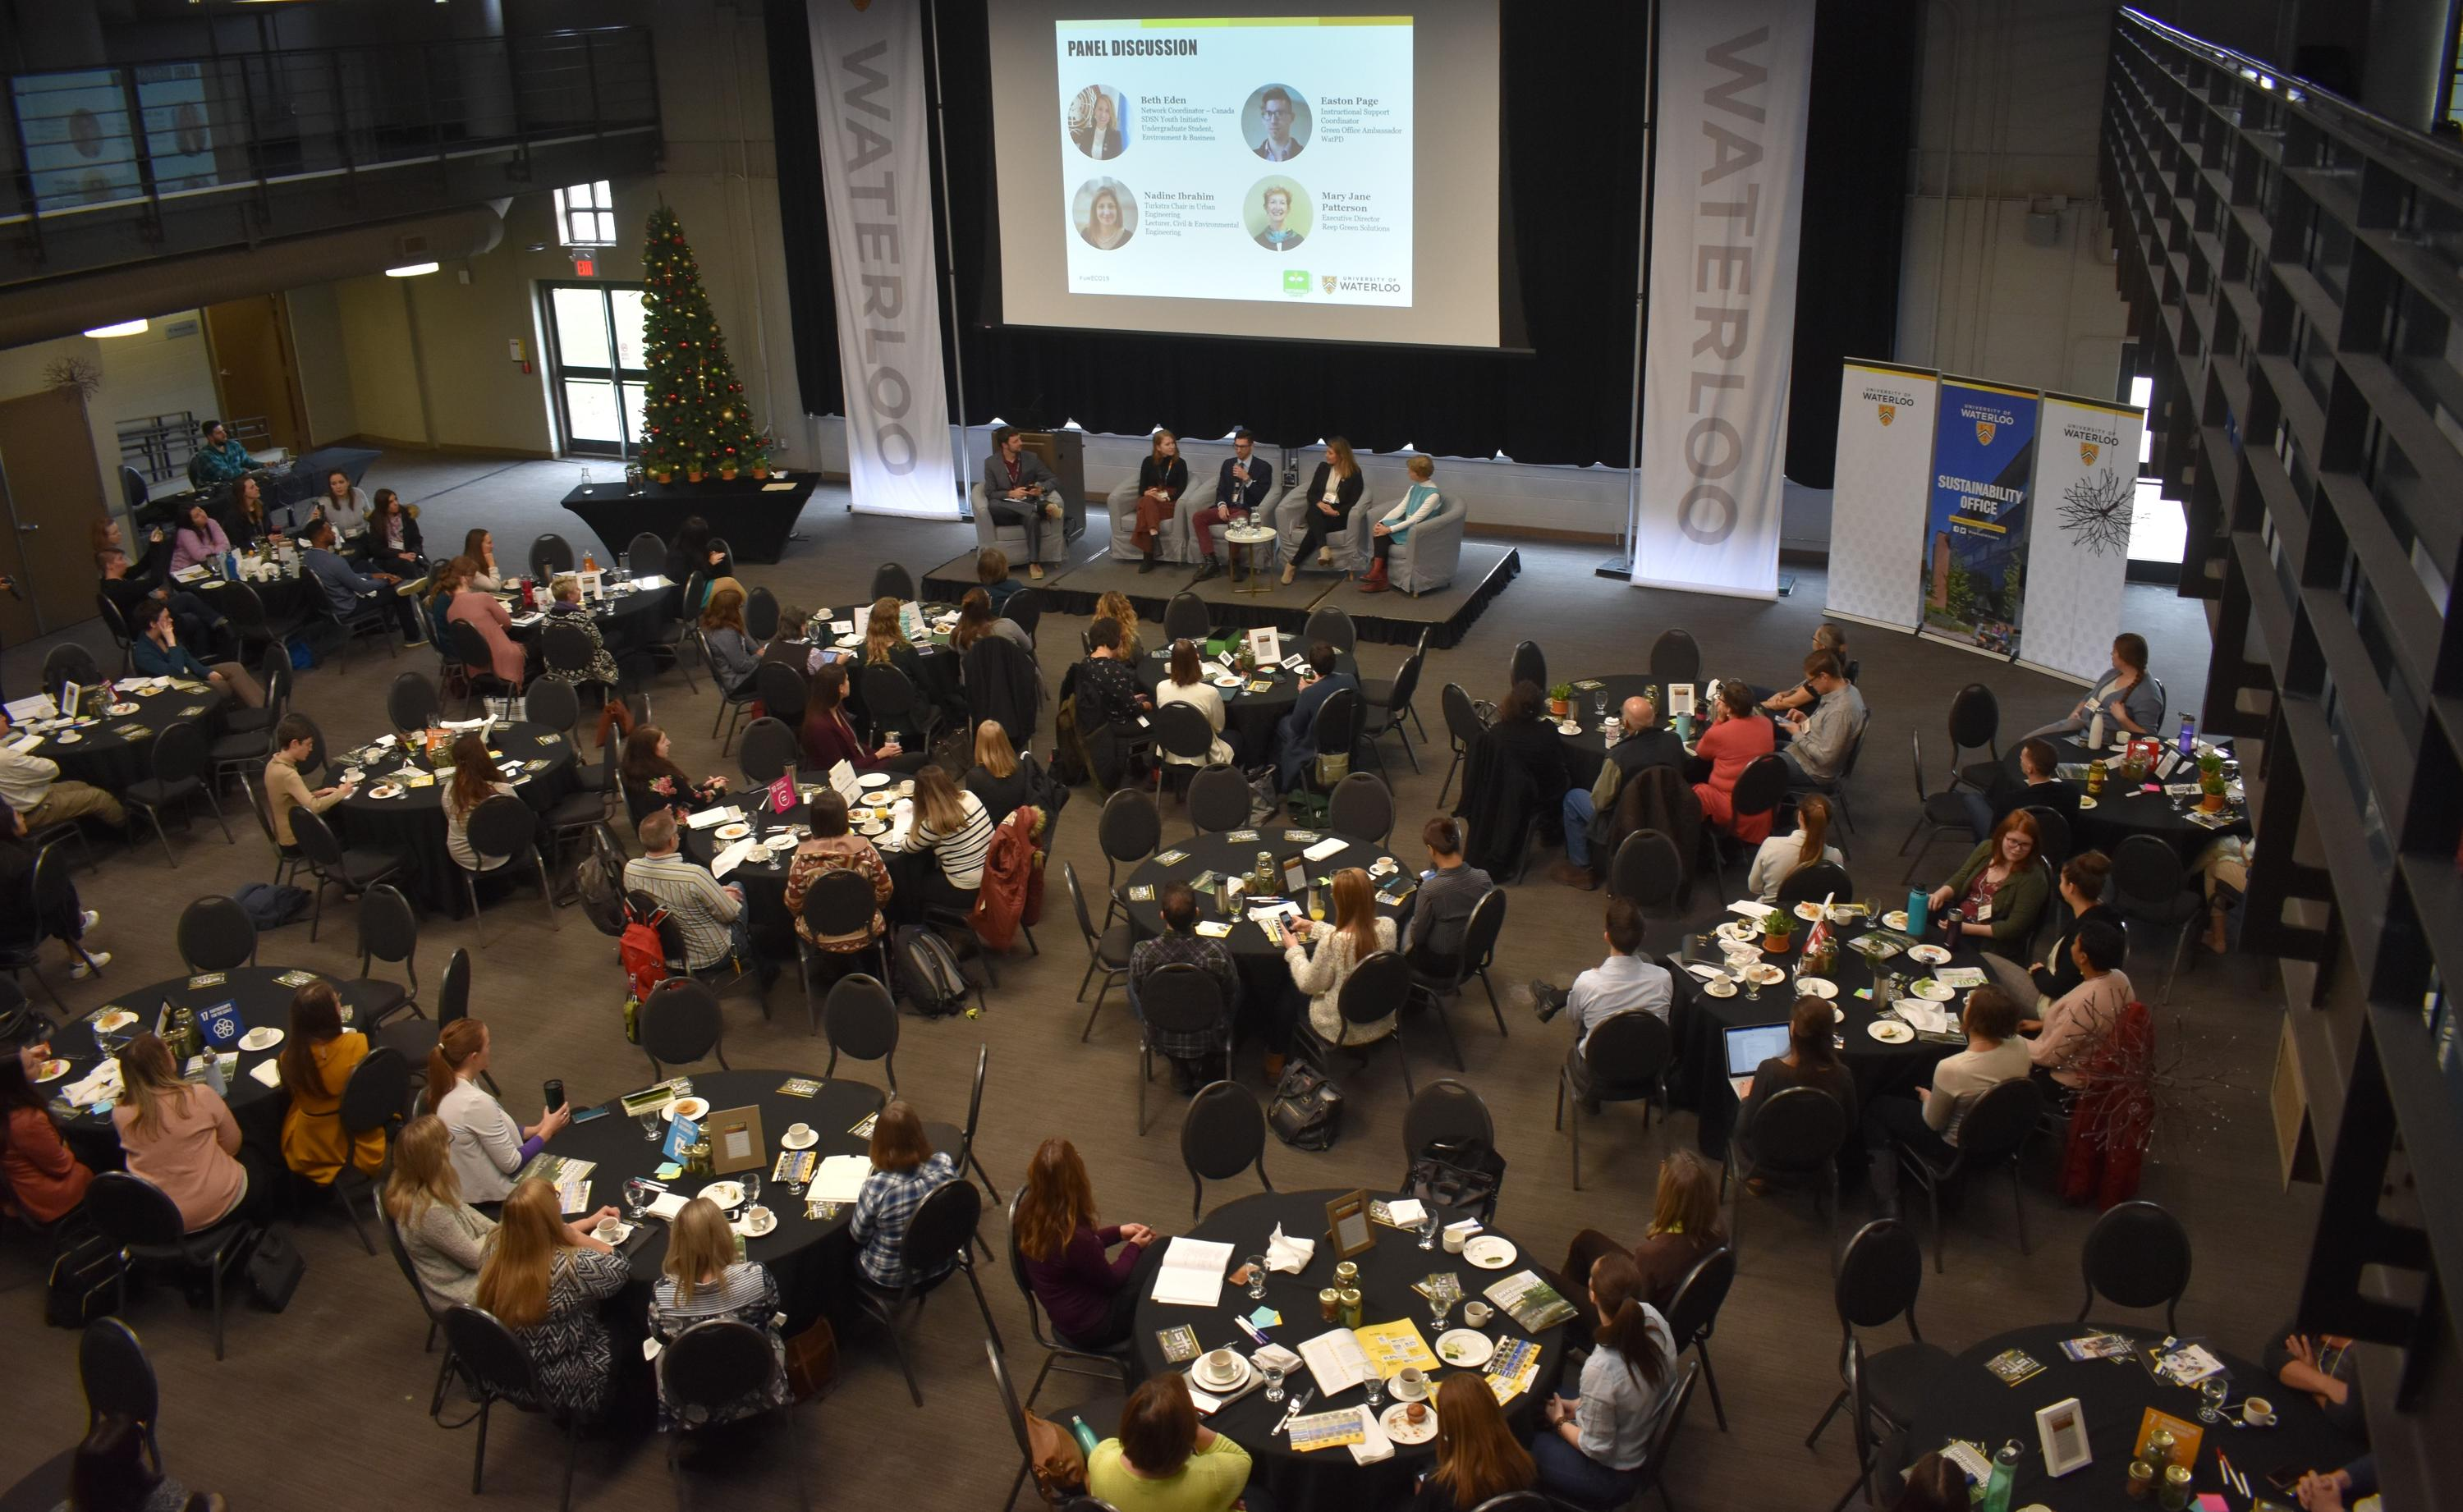 Aerial shot of Eco Summit event, with panel members on stage and participants at round tables in audience